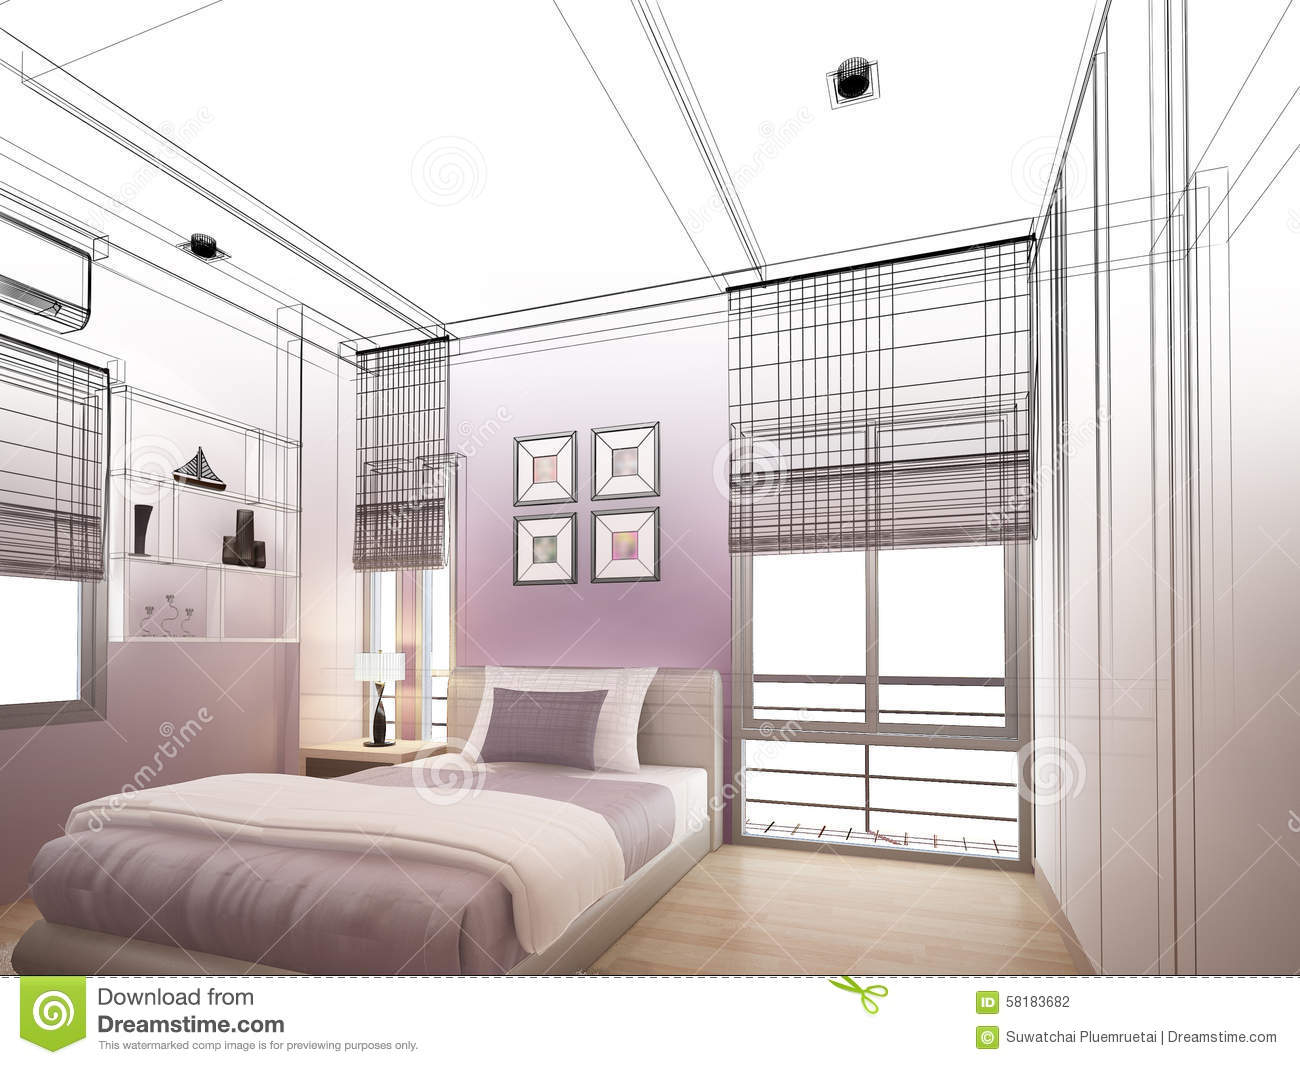 Interior Design Bedroom Sketches. Abstract Sketch Design Of Interior Bedroom.  Blueprint, Family.